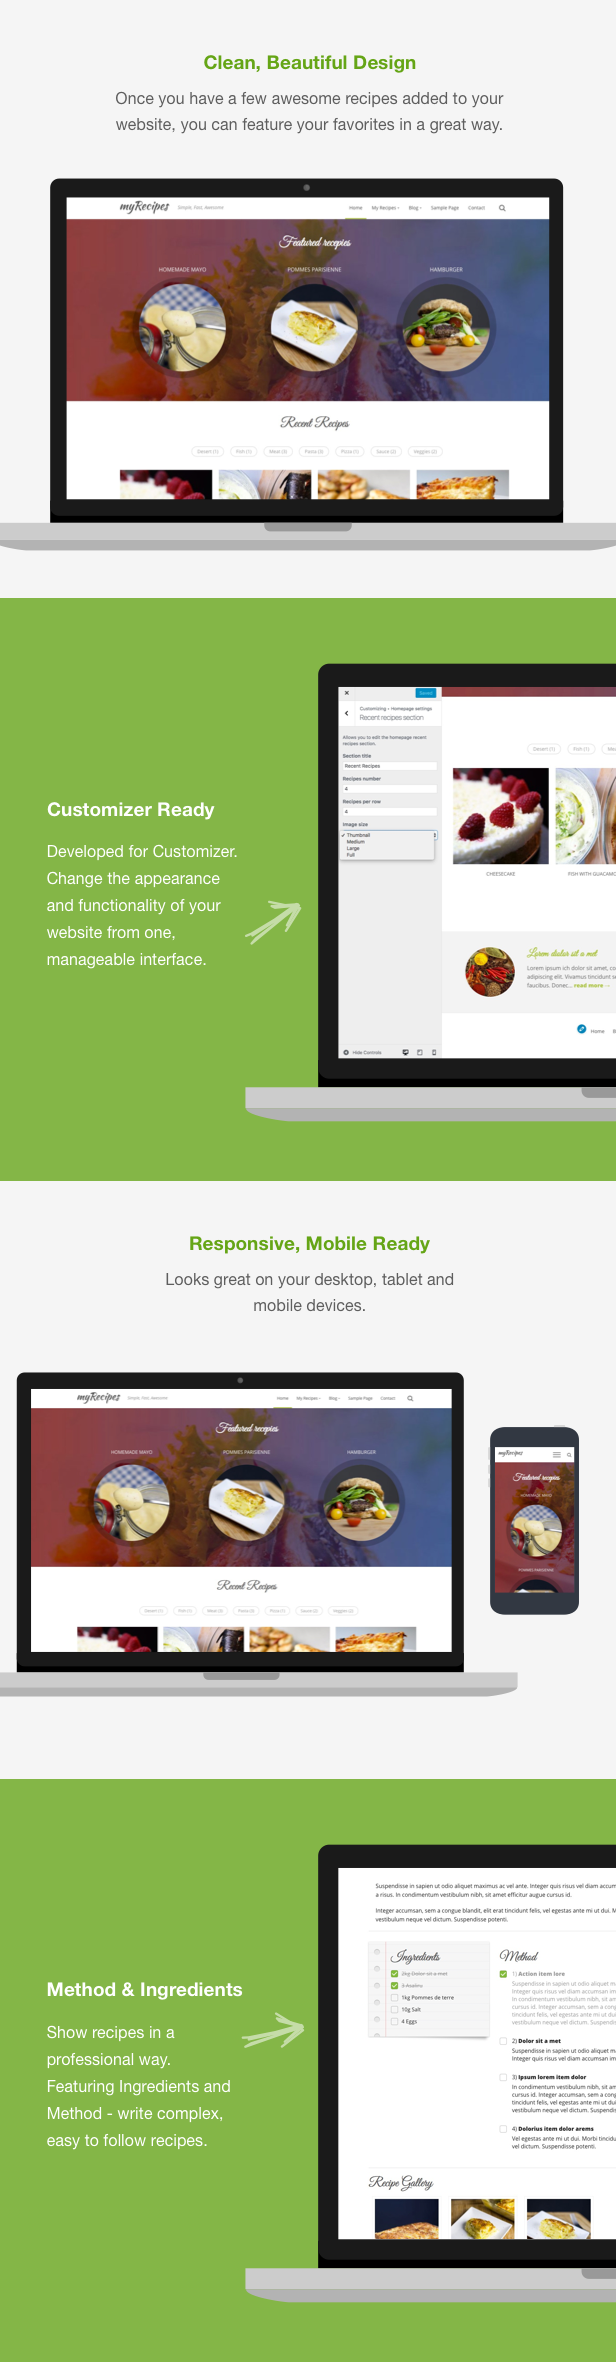 Myrecipes recipes wordpress theme by toptheme themeforest it features method and ingredients approaches which comes very handy for your visitors to easily follow your recipes forumfinder Choice Image